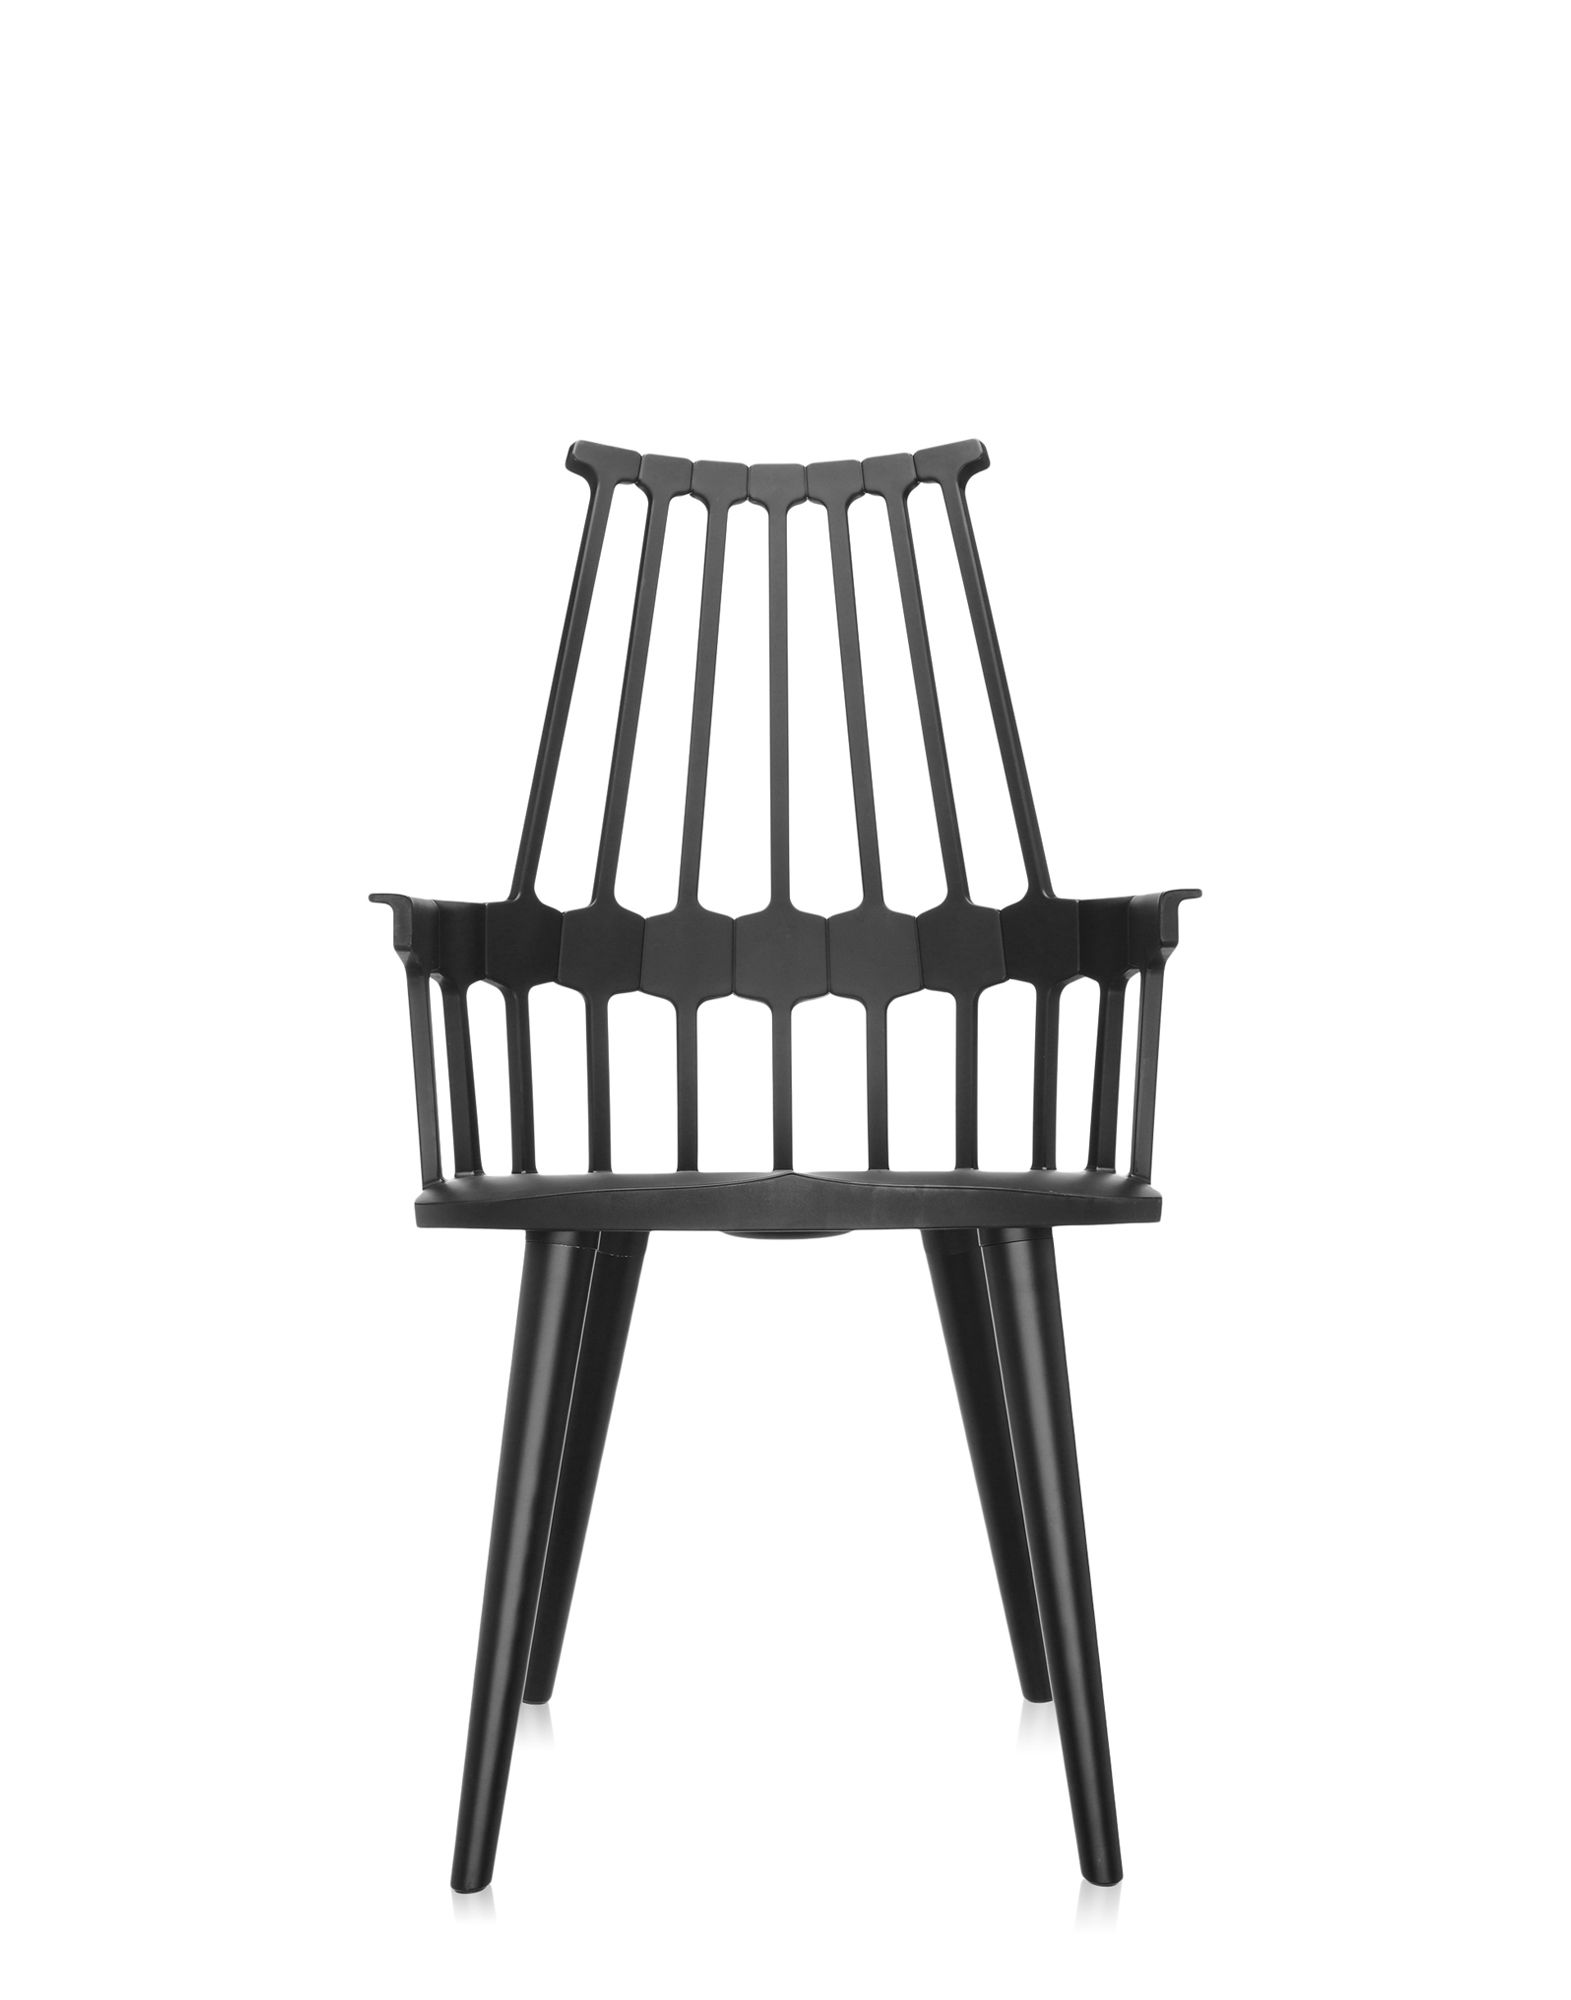 Windsor Chairs Black Kartell Comback Chair Black Chair Kartell Design Chairs Newformsdesign